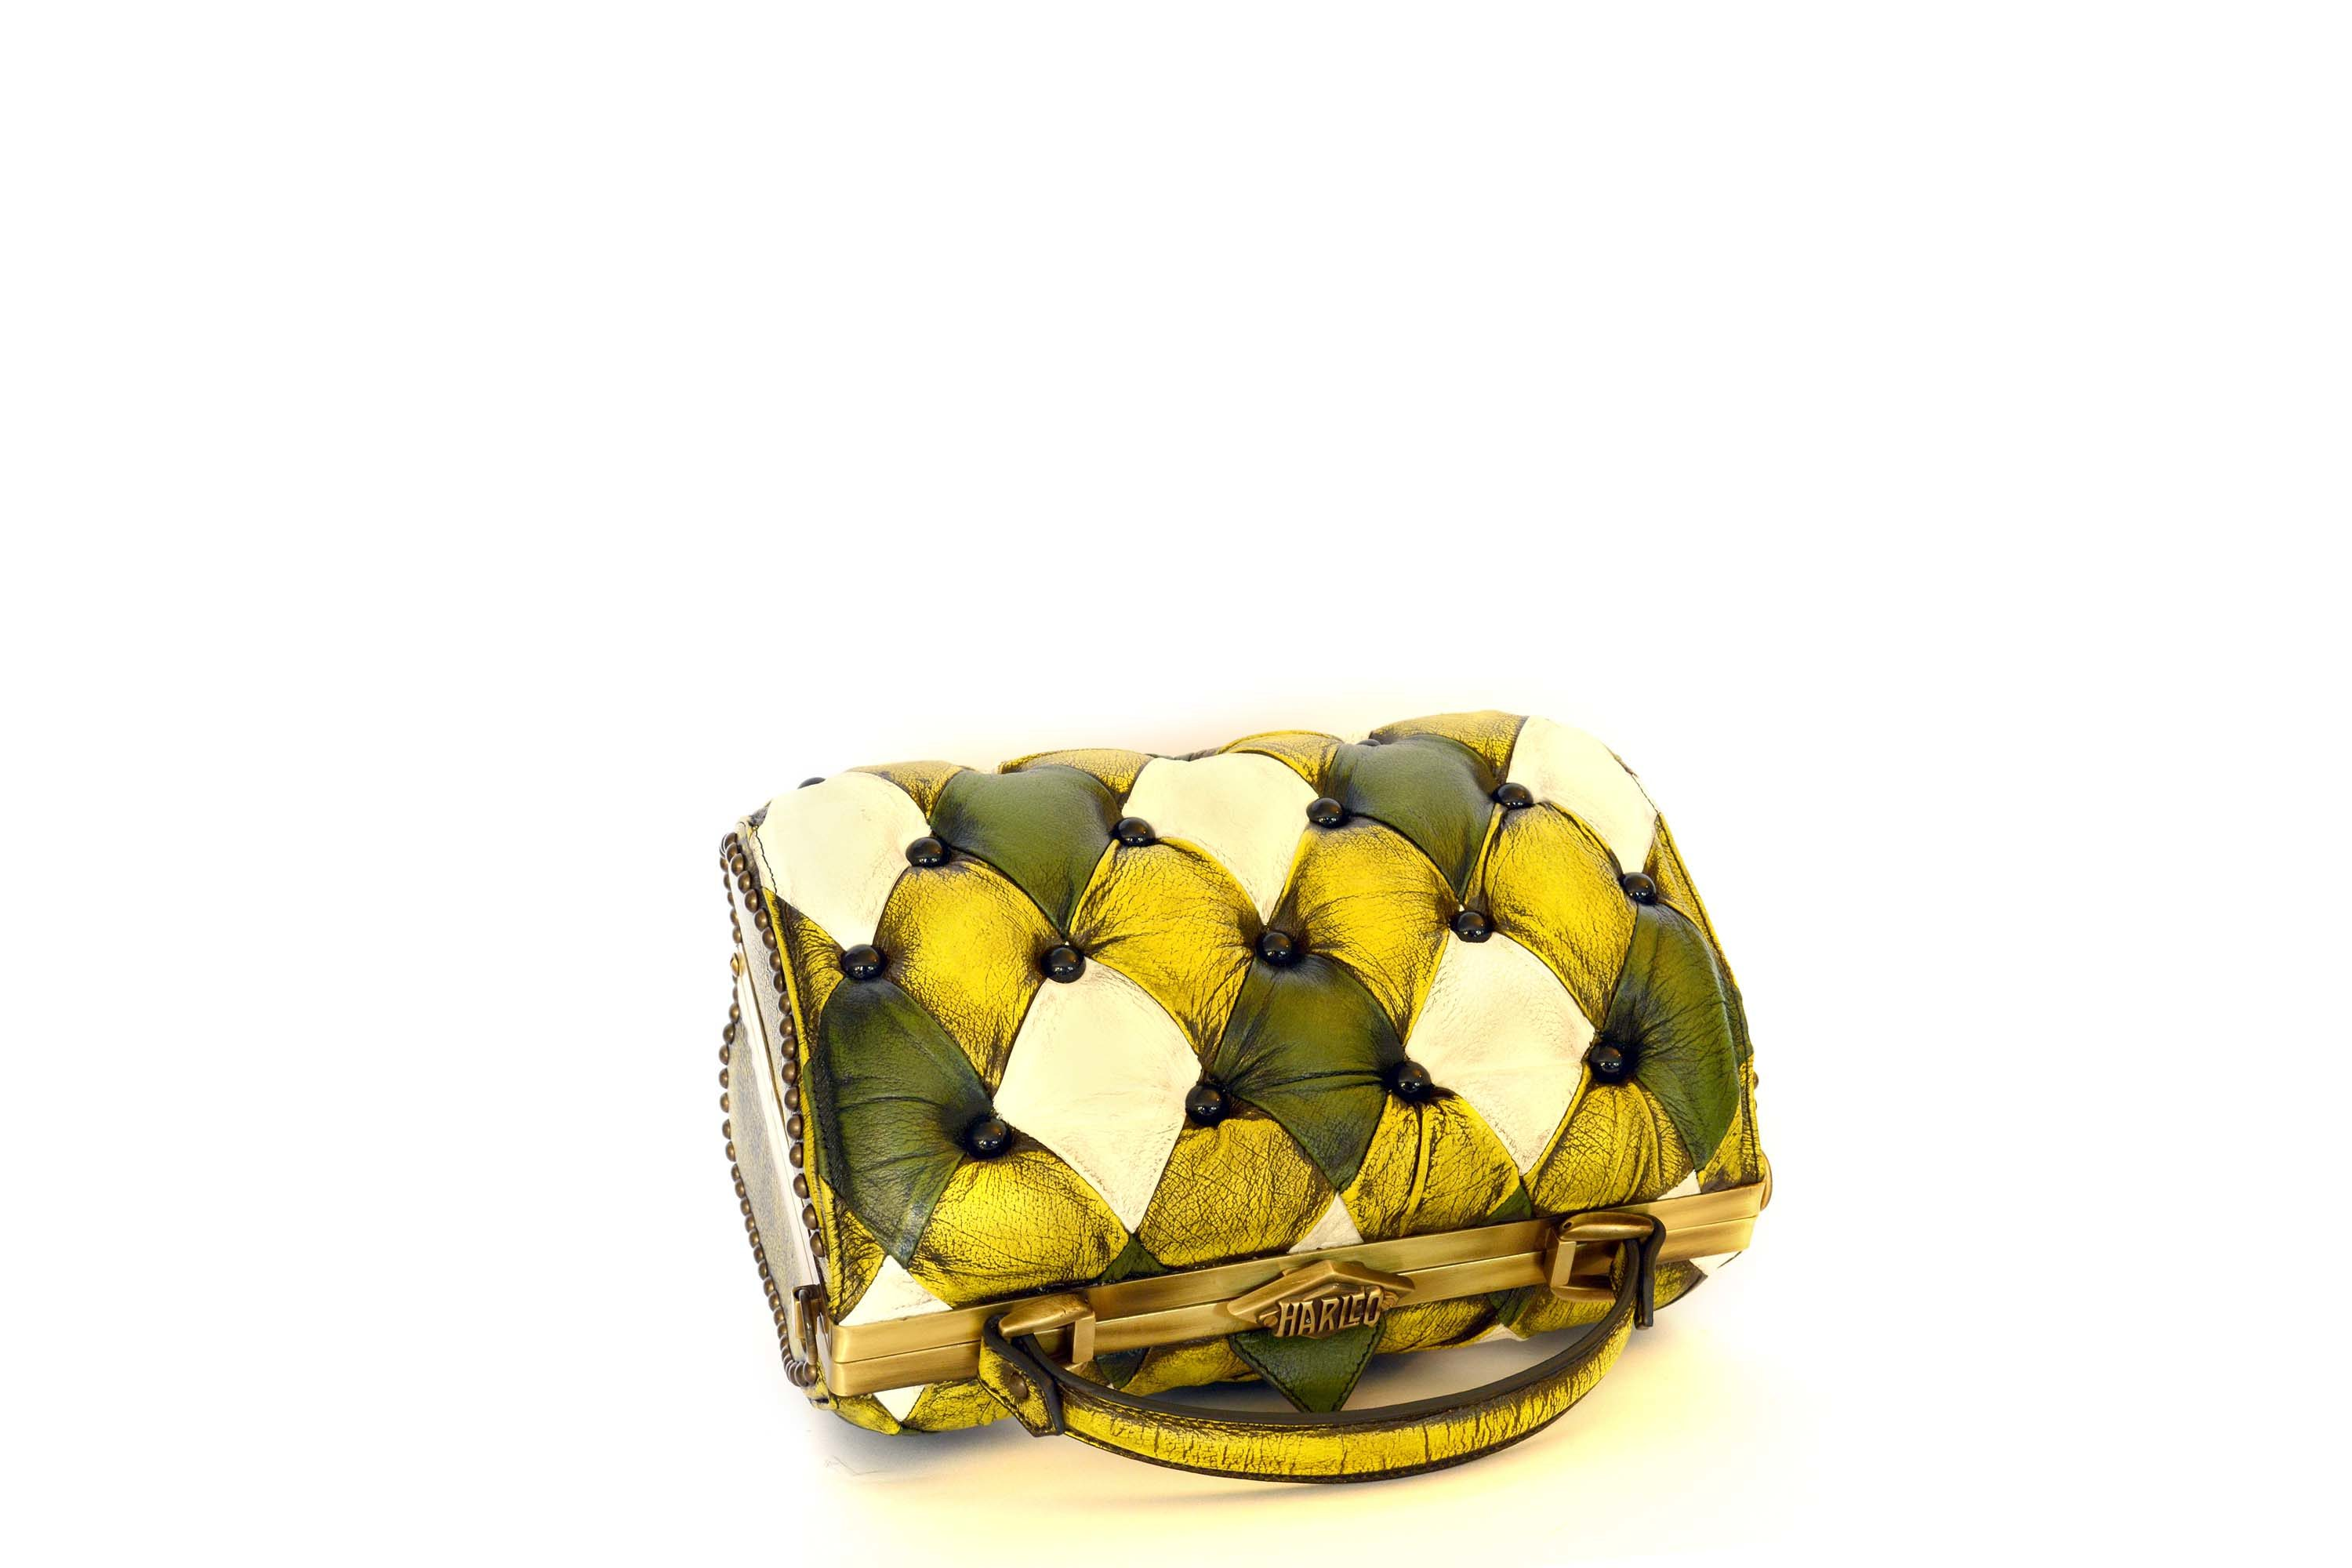 harleq-green-lemon-bags-luxury-leathers